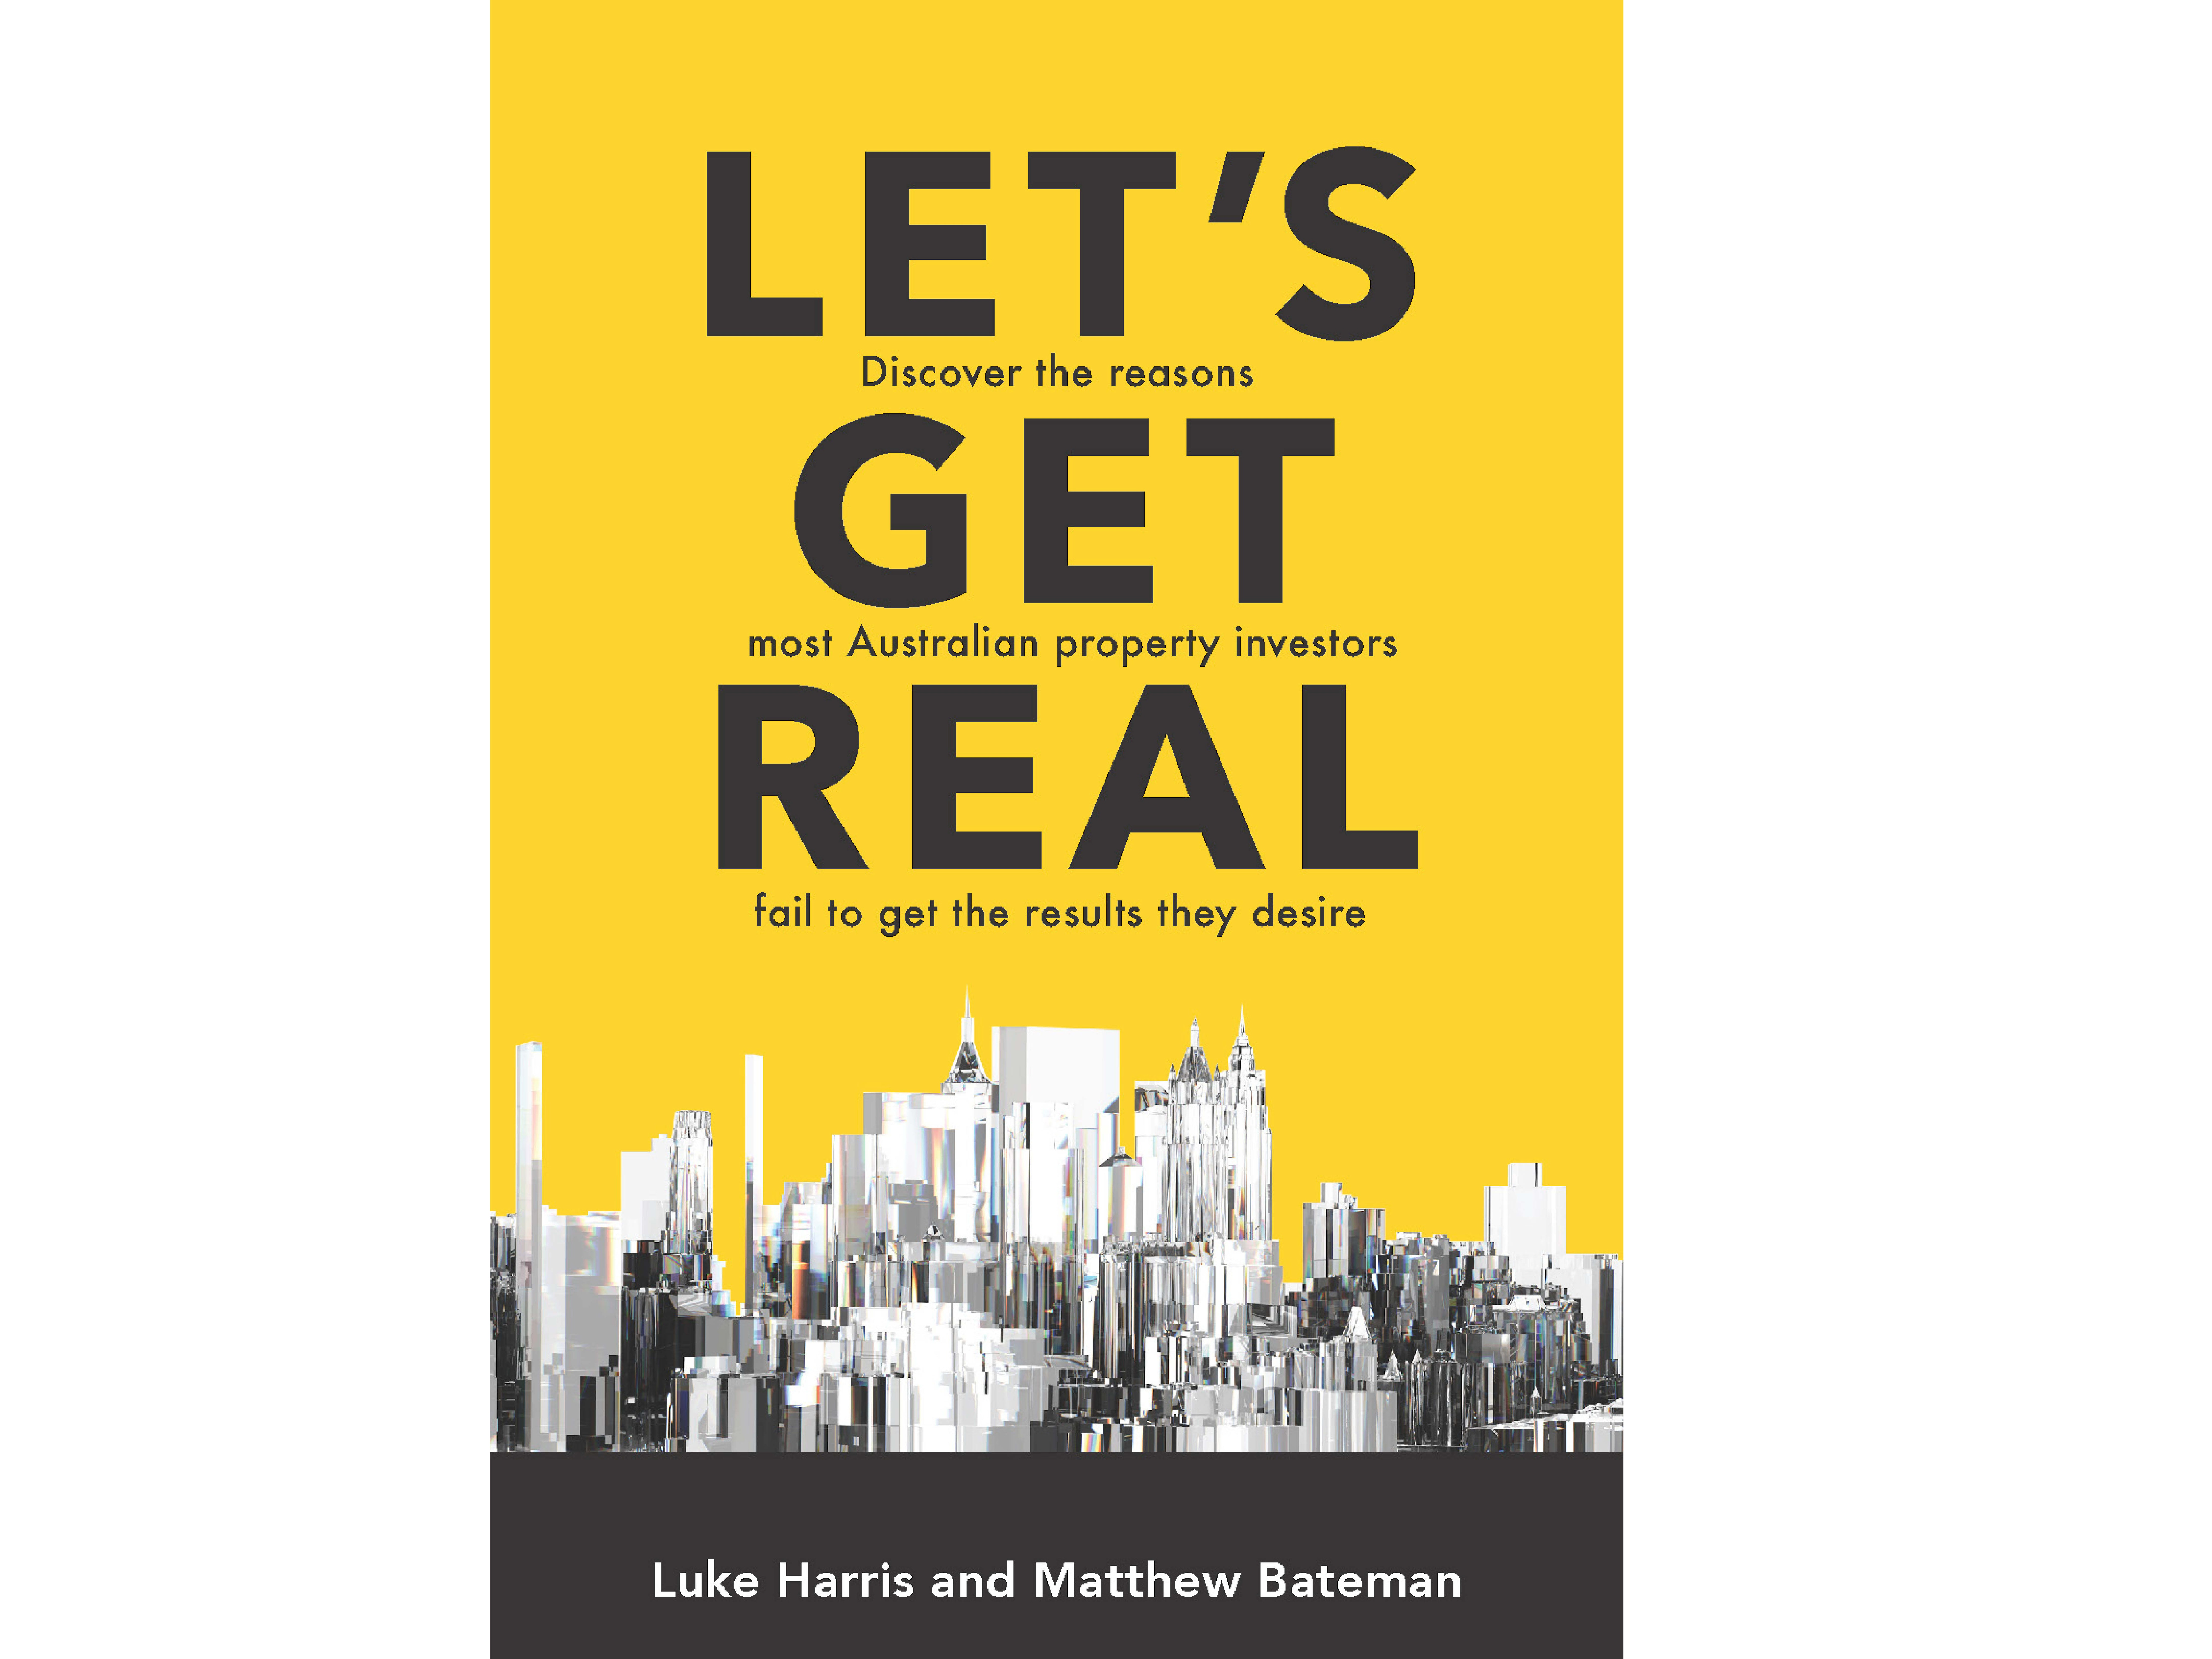 Let's Get Real book sweepstakes